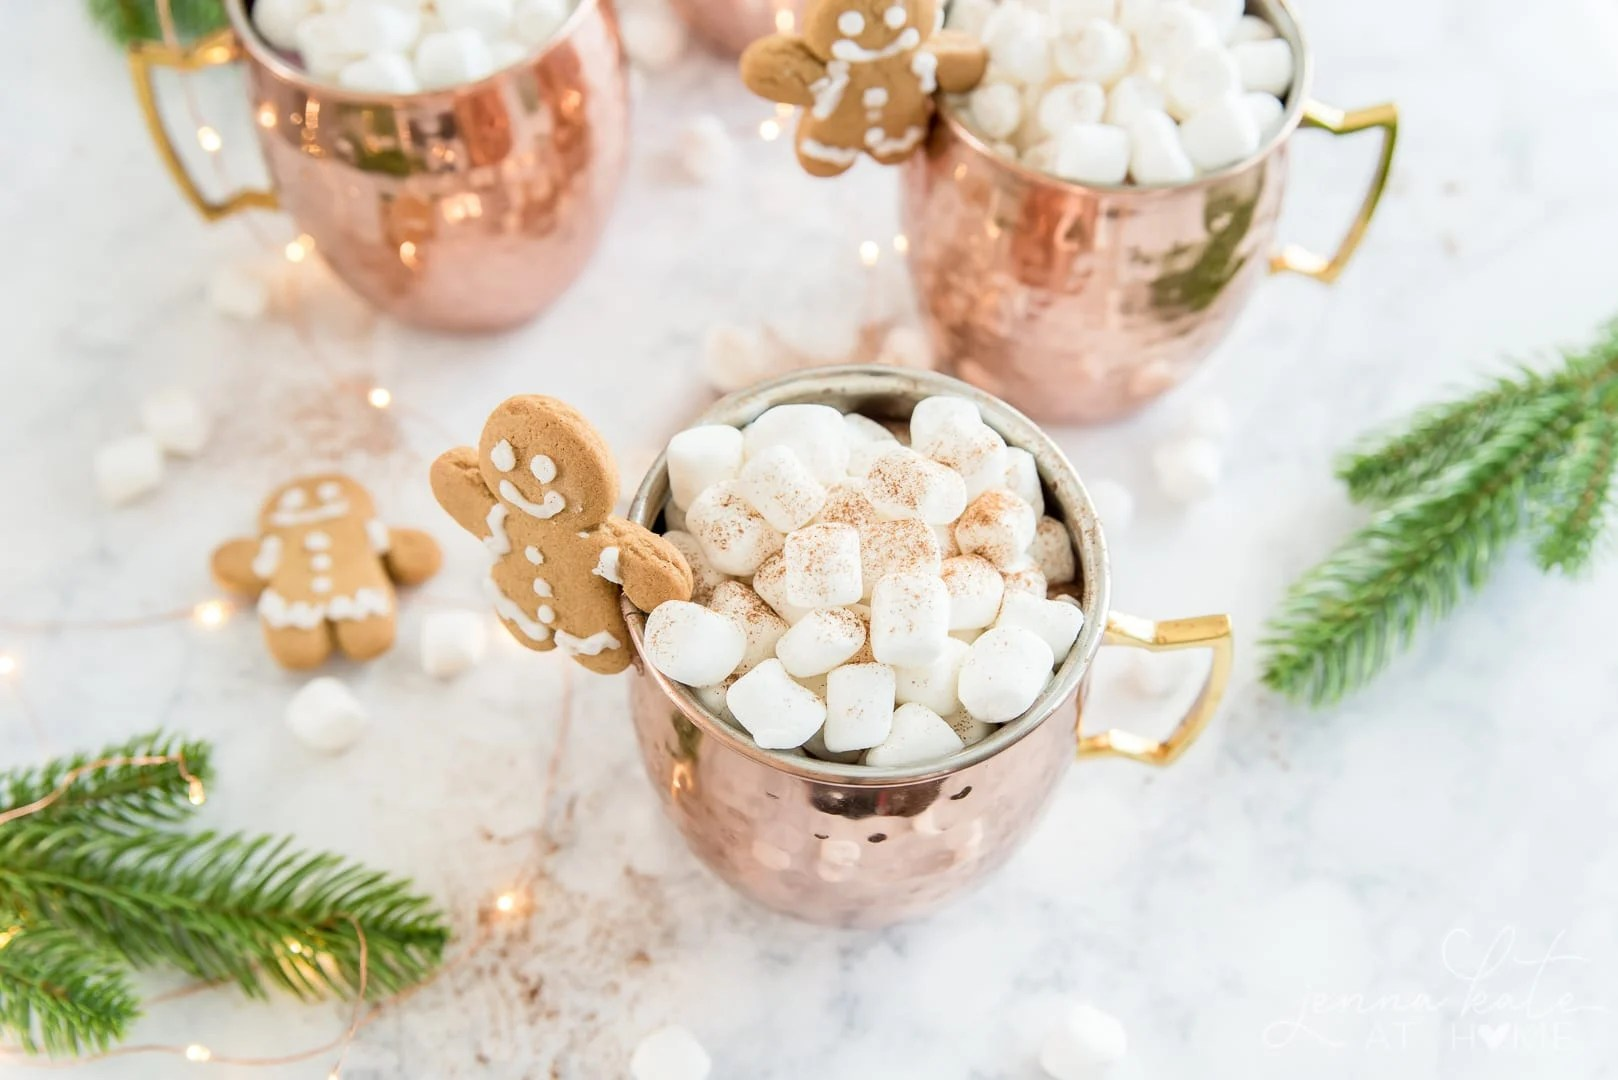 Mug full of marshmallows dusted with cinnamon spice